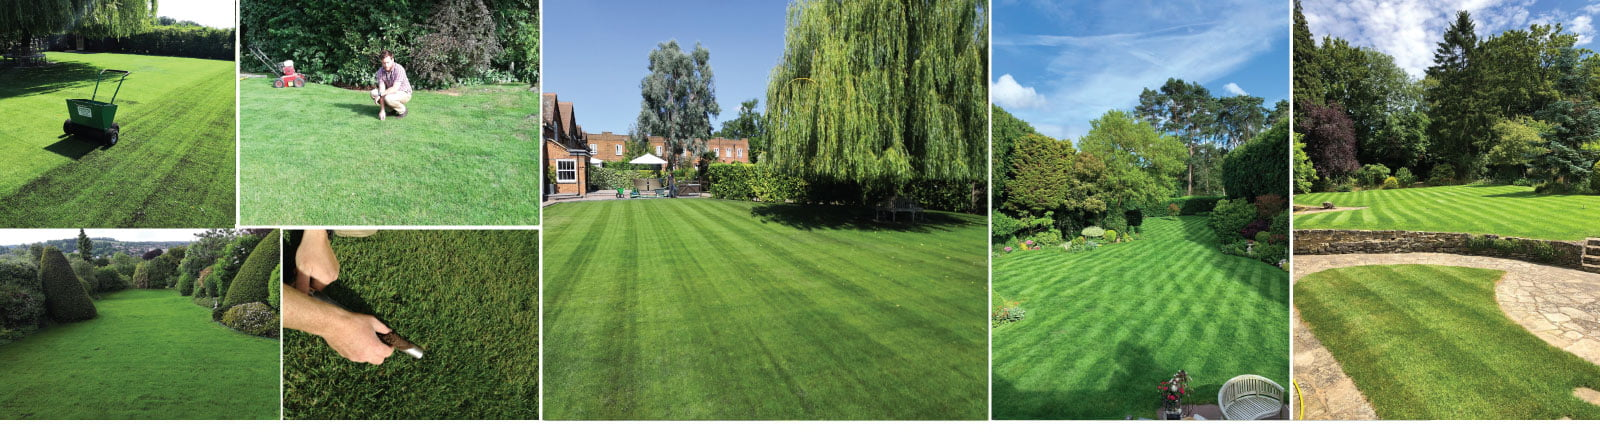 Surrey Lawn Care Customer Lawns